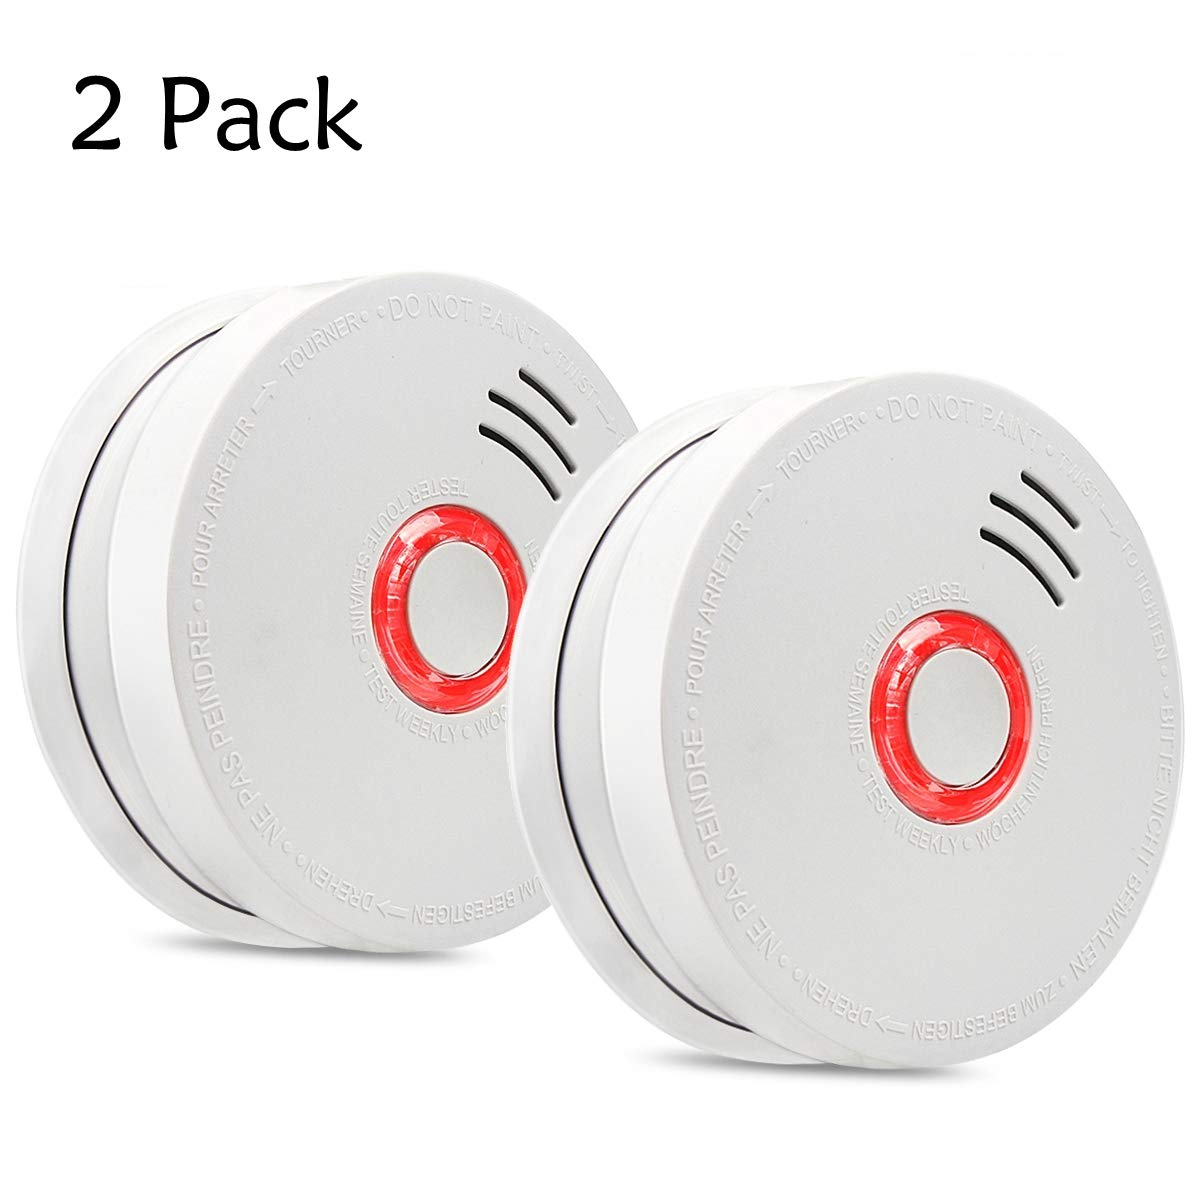 DaSinKo GS528A Portable Photoelectric Smoke and Fire Alarm Sensor with 9V Battery Operated,2 Pack